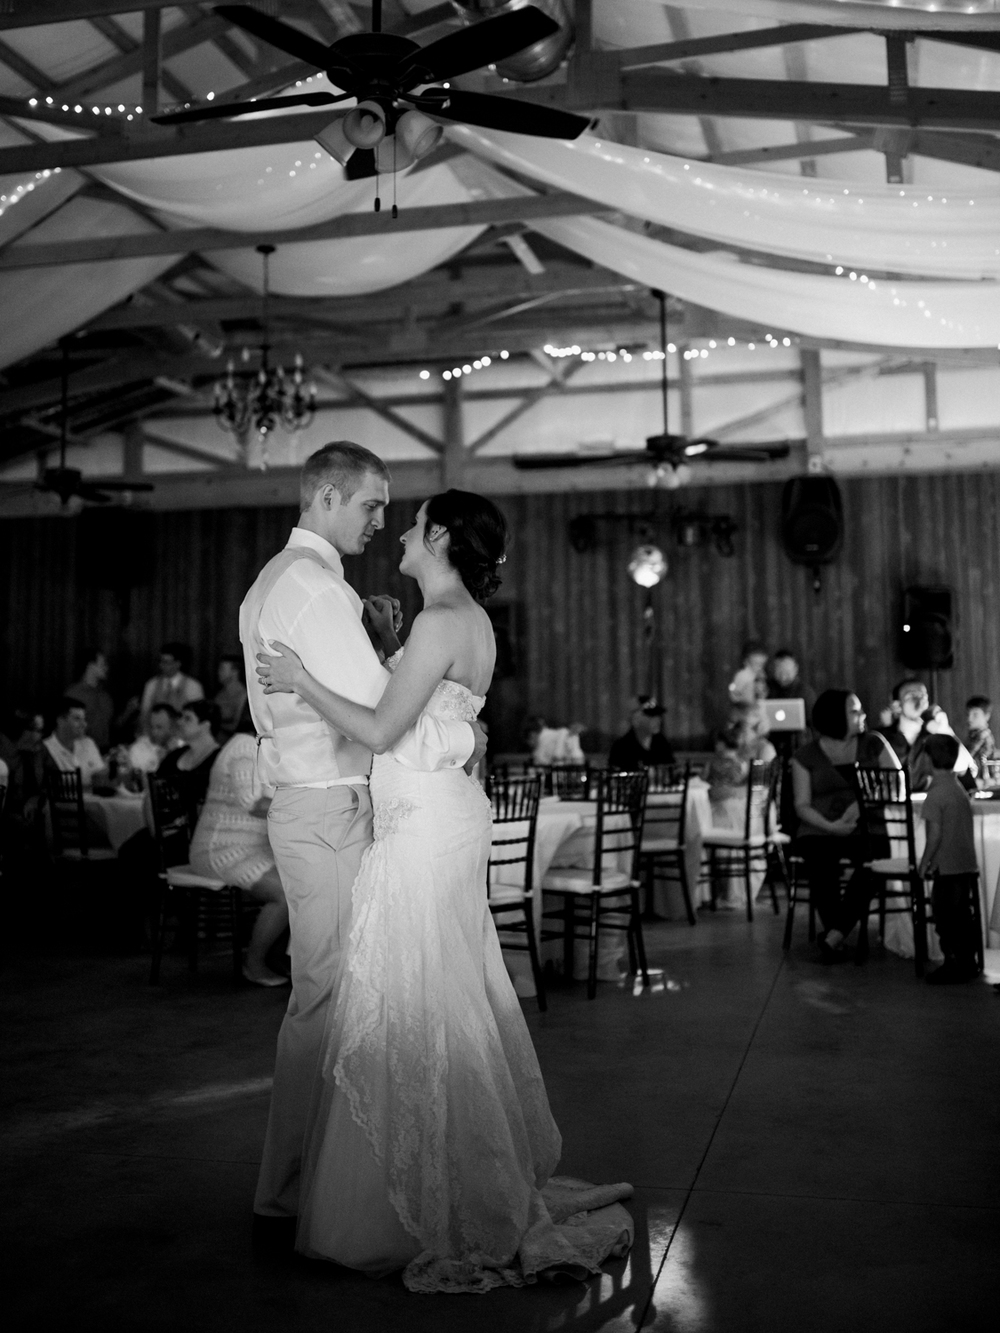 Wichita, Kansas Wedding Photographer-Neal Dieker-Rustic Timbers Venue-Wichita, Kansas Outdoor Wedding-208.jpg